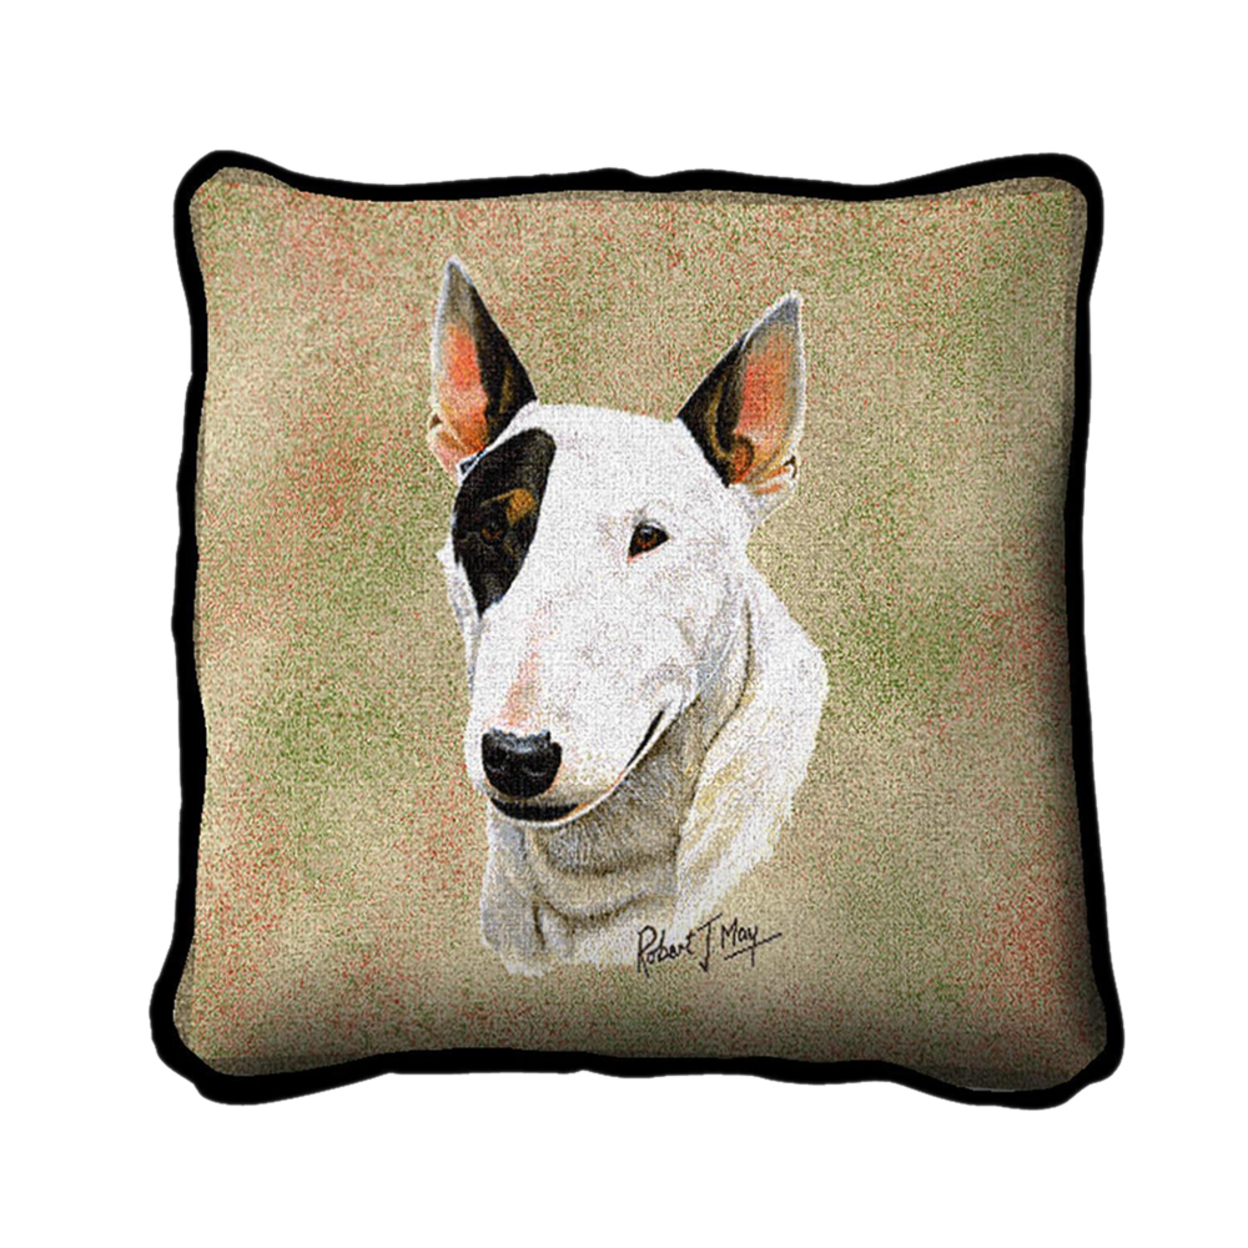 Pure Country Weavers Home Decorative Bull Terrier Pillow Cover 596a08822a00e45f194ec6a8